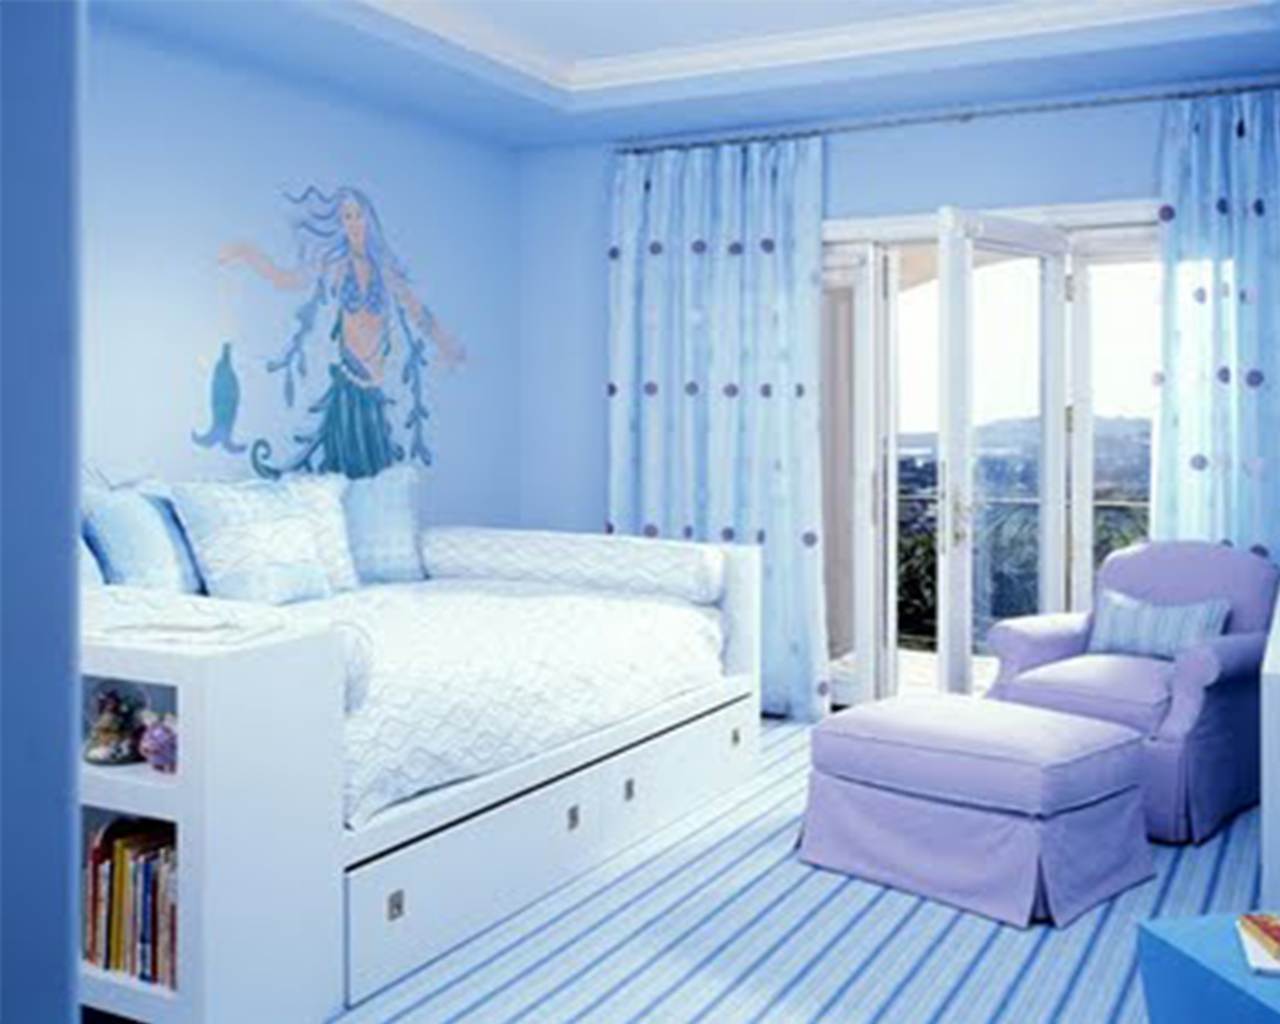 Beauty Design Of The Bedroom Paint Color Ideas With Blue Wall Ideas Added With White Wooden Bed And Blue Tosca Curtain Ideas